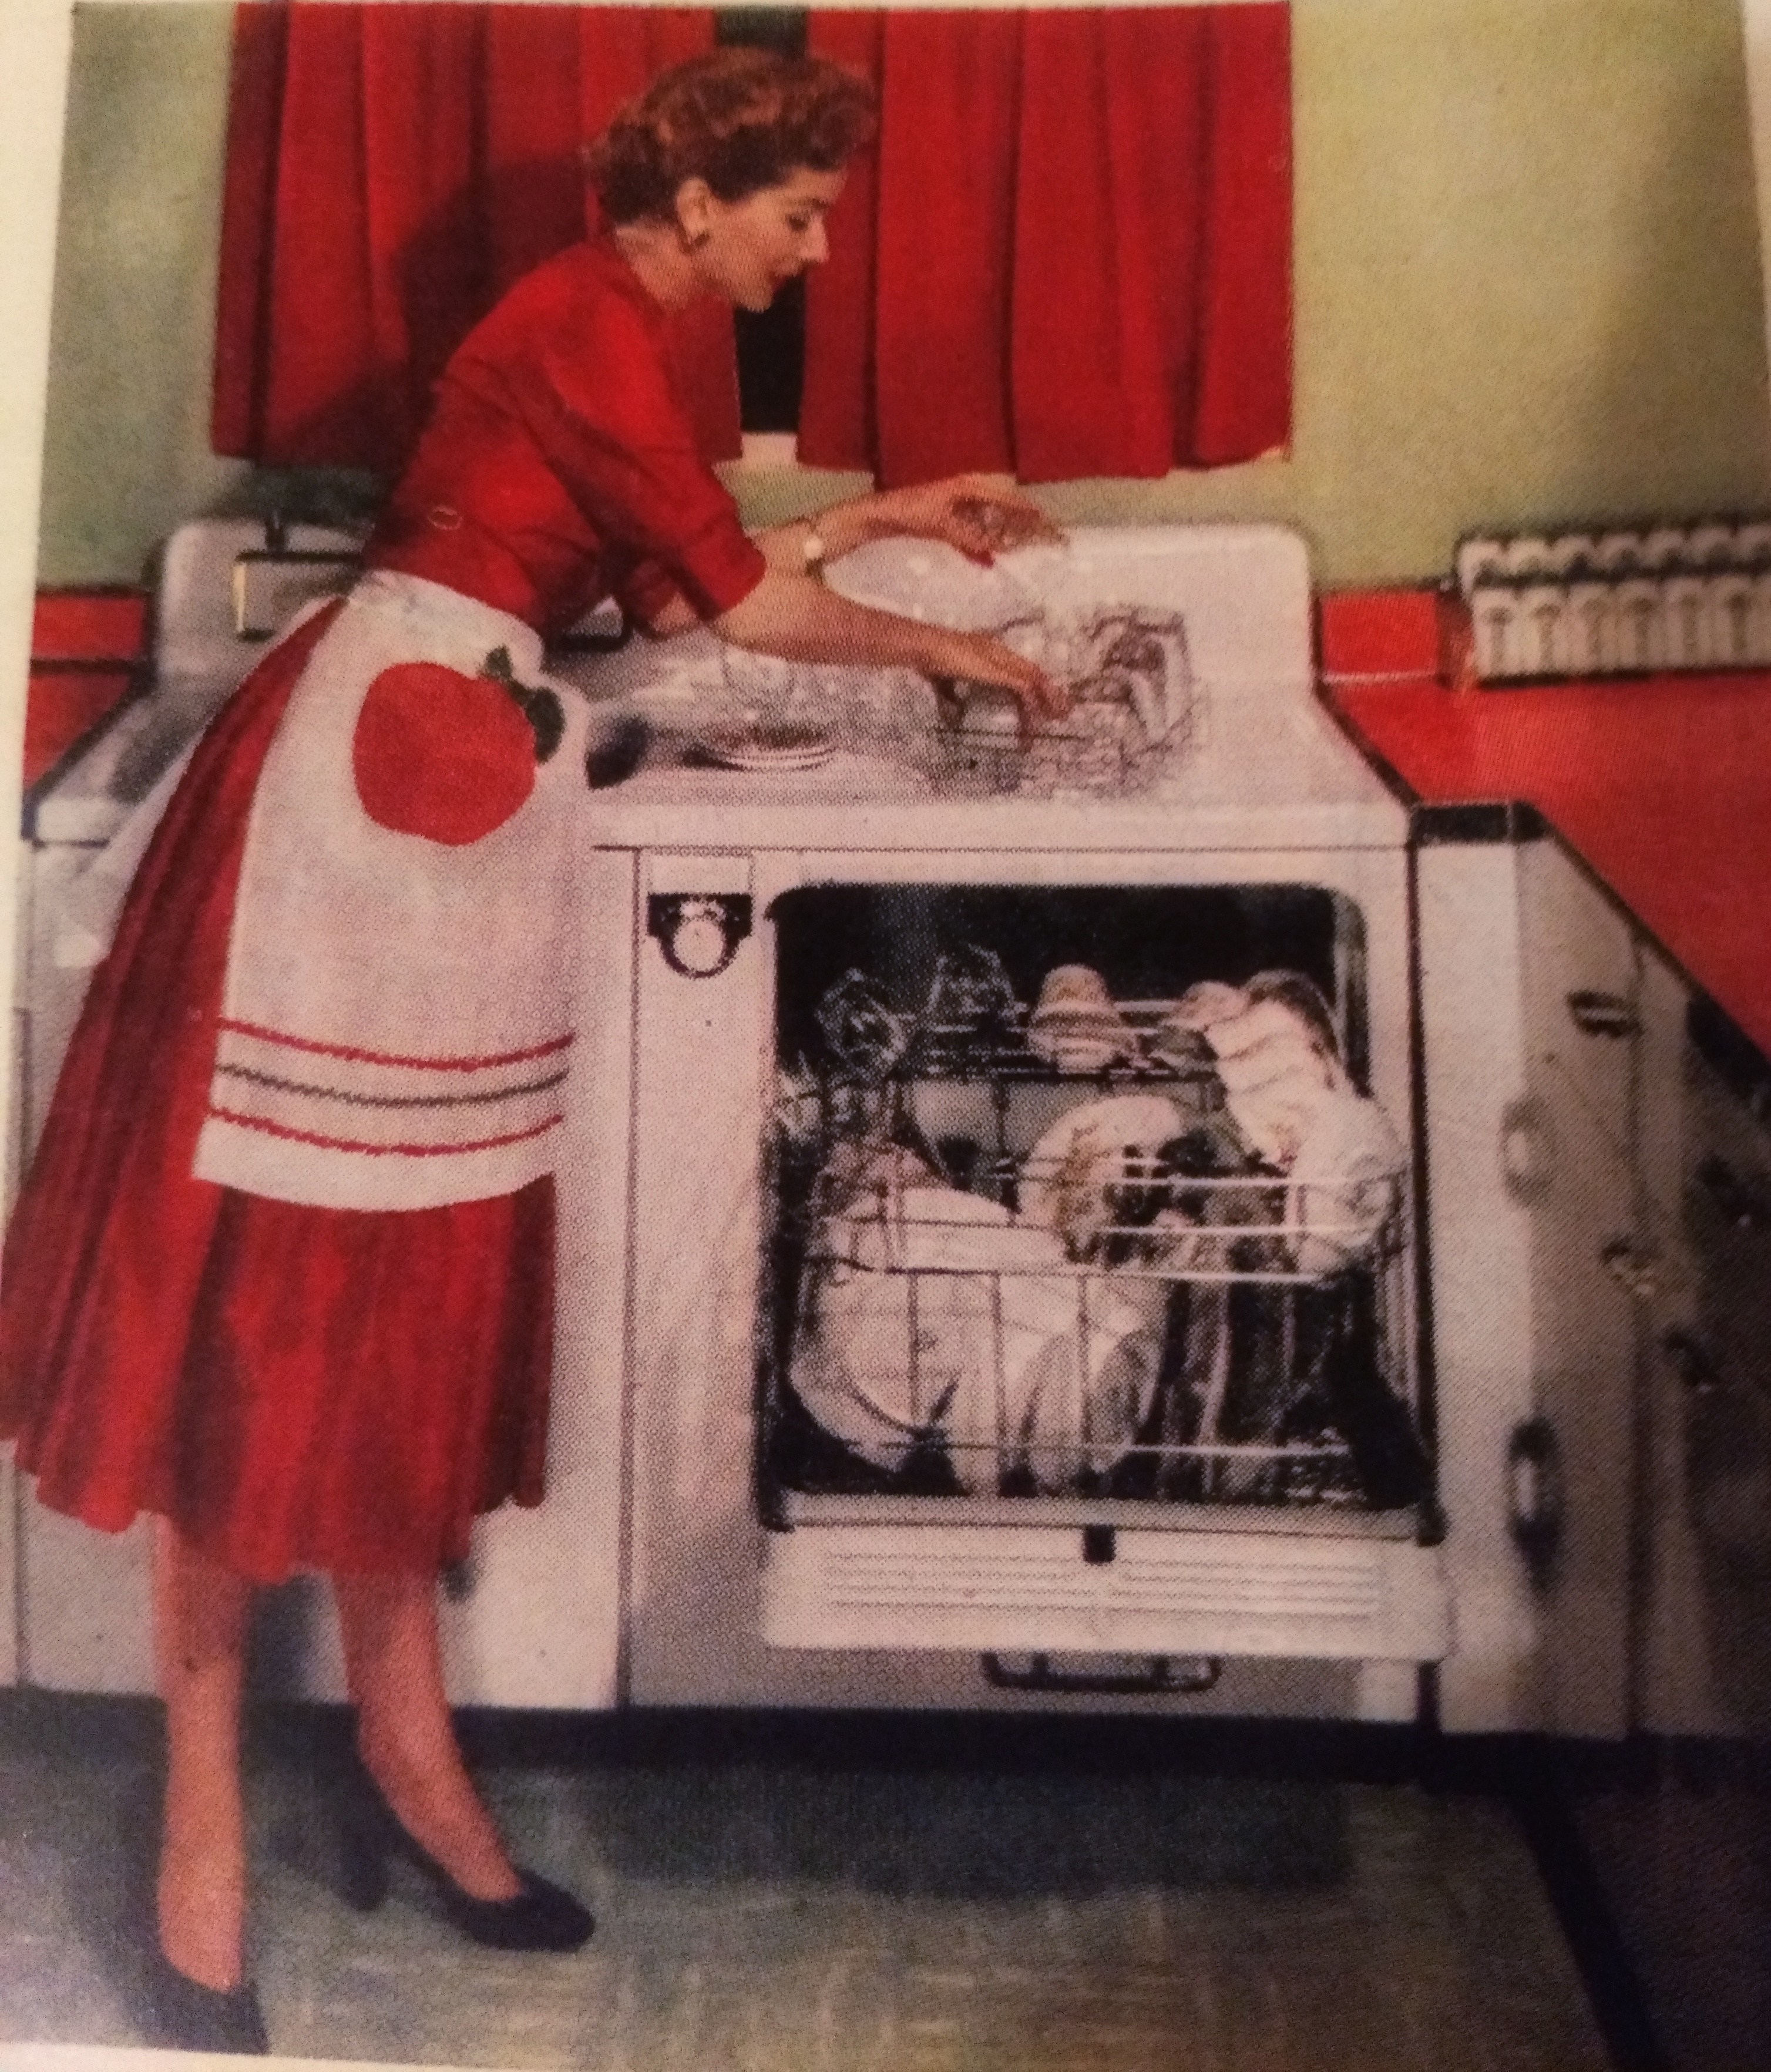 In Defense Of The 1950s Housewife